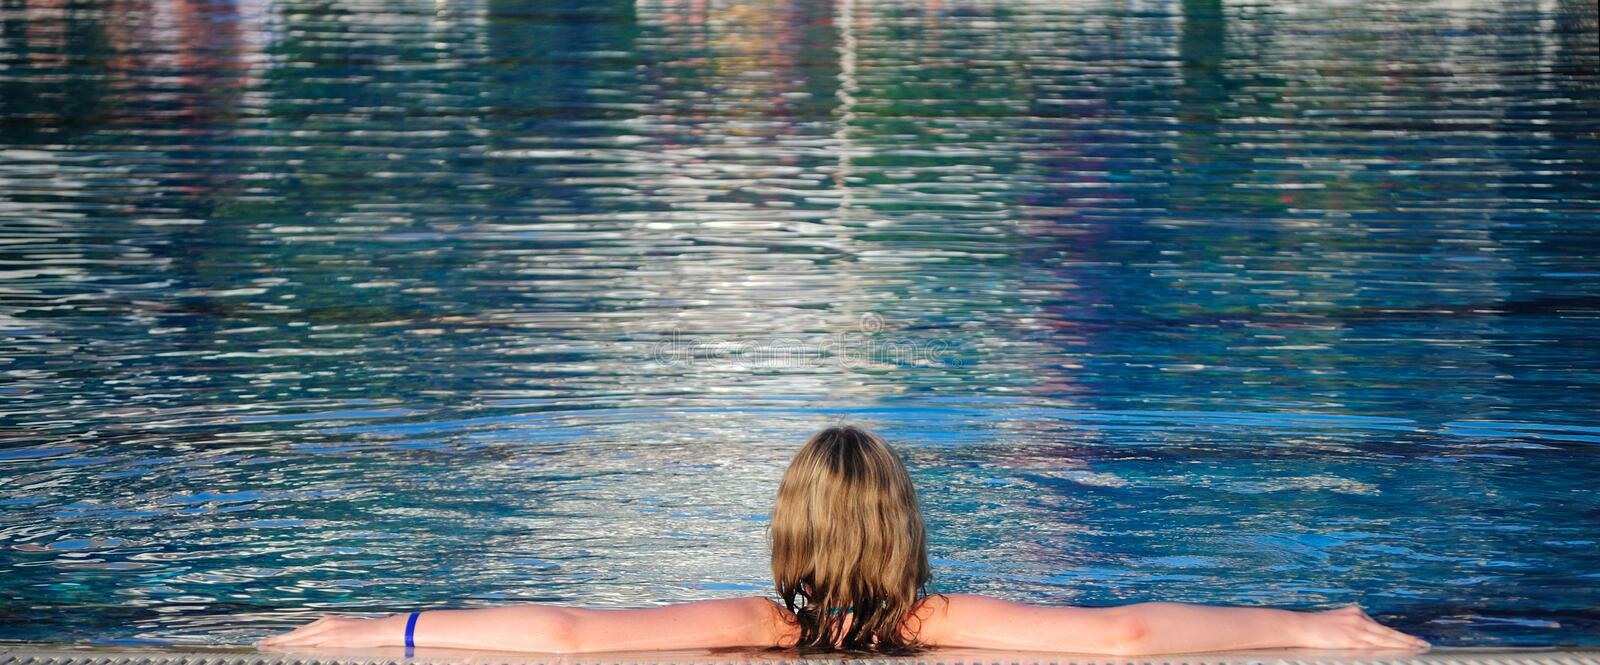 The girl in pool stock images